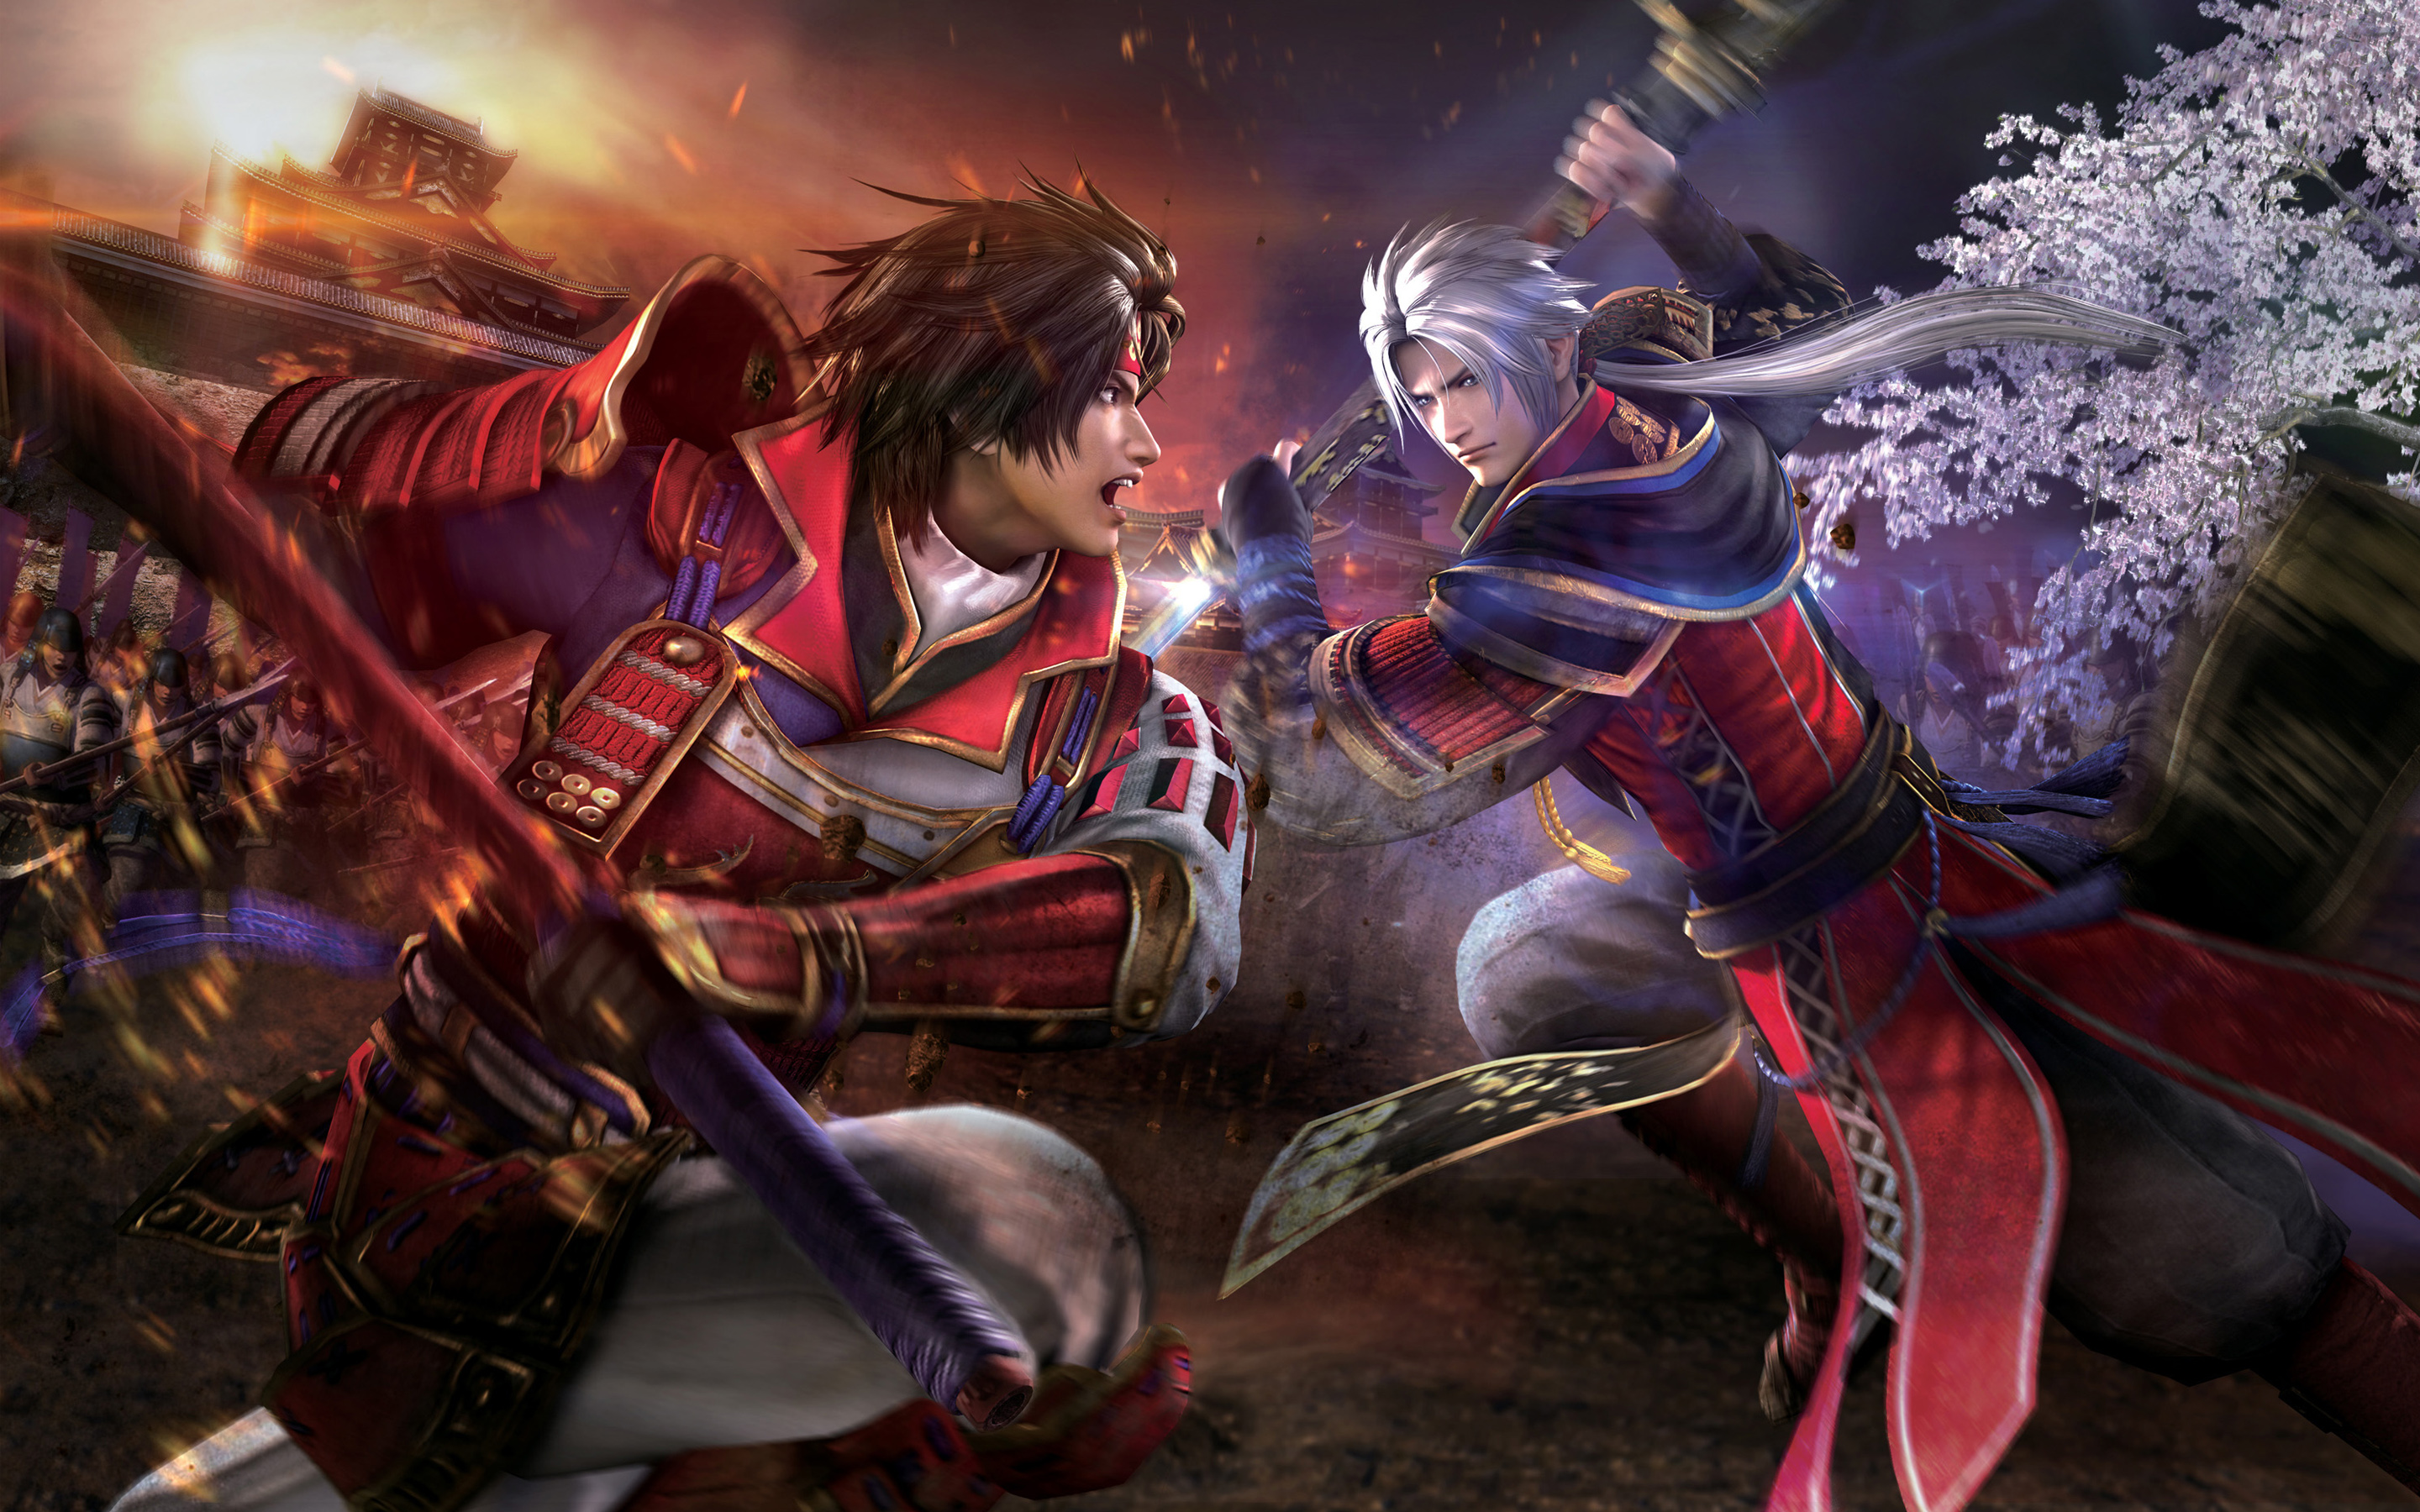 Samurai Warriors 4 Fondo De Pantalla Hd Fondo De